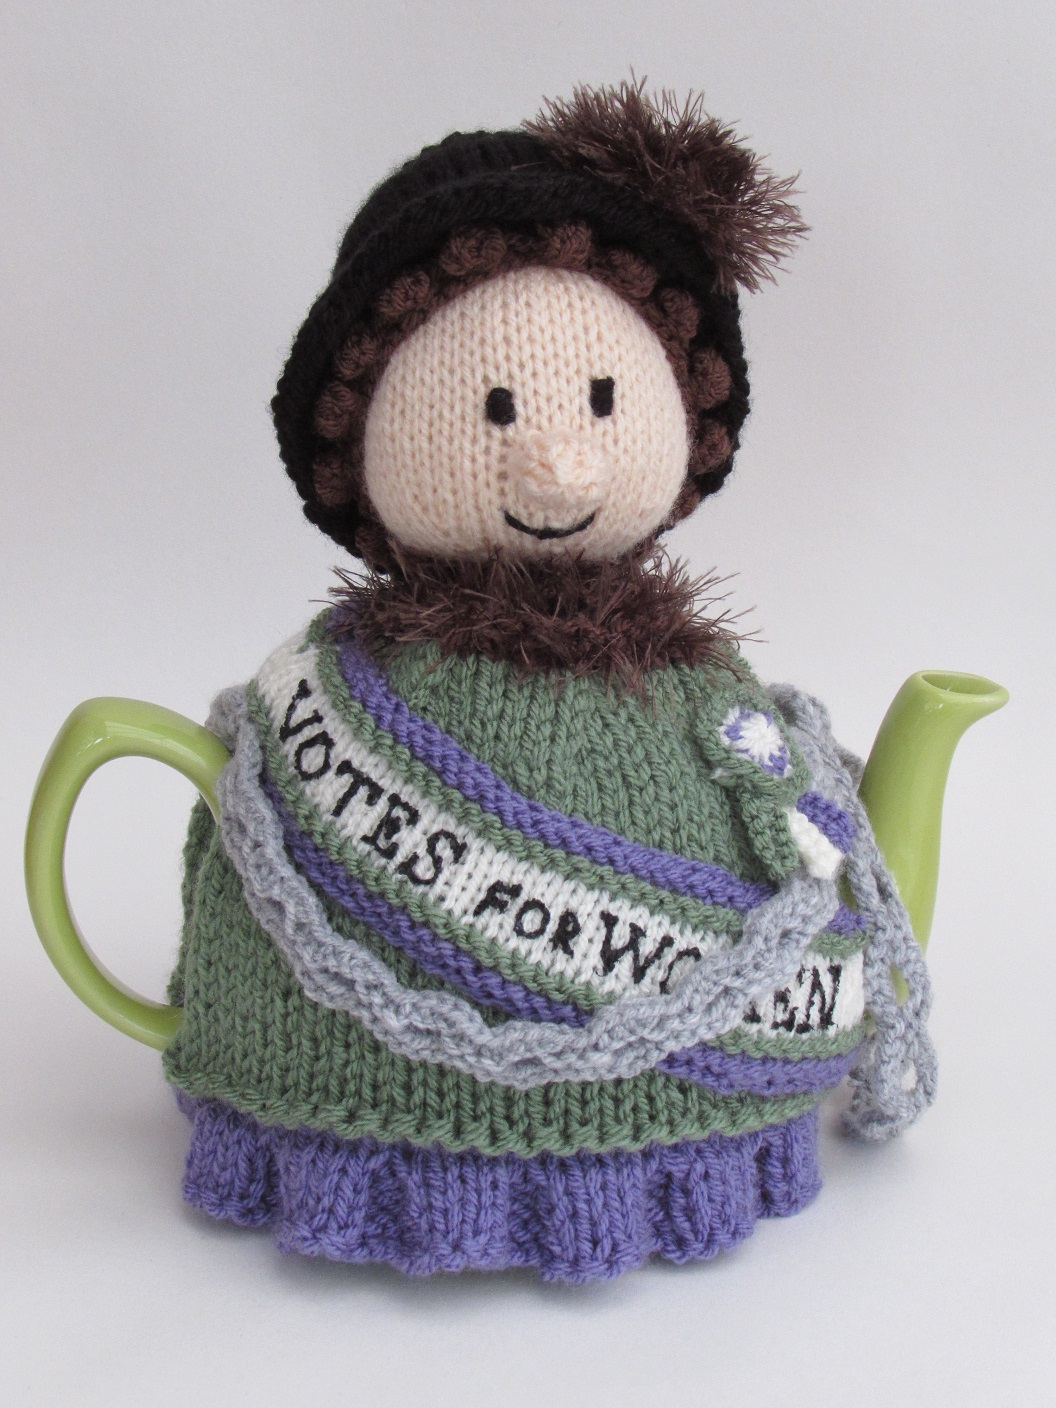 tea cosy template - suffragette tea cosy knitting pattern